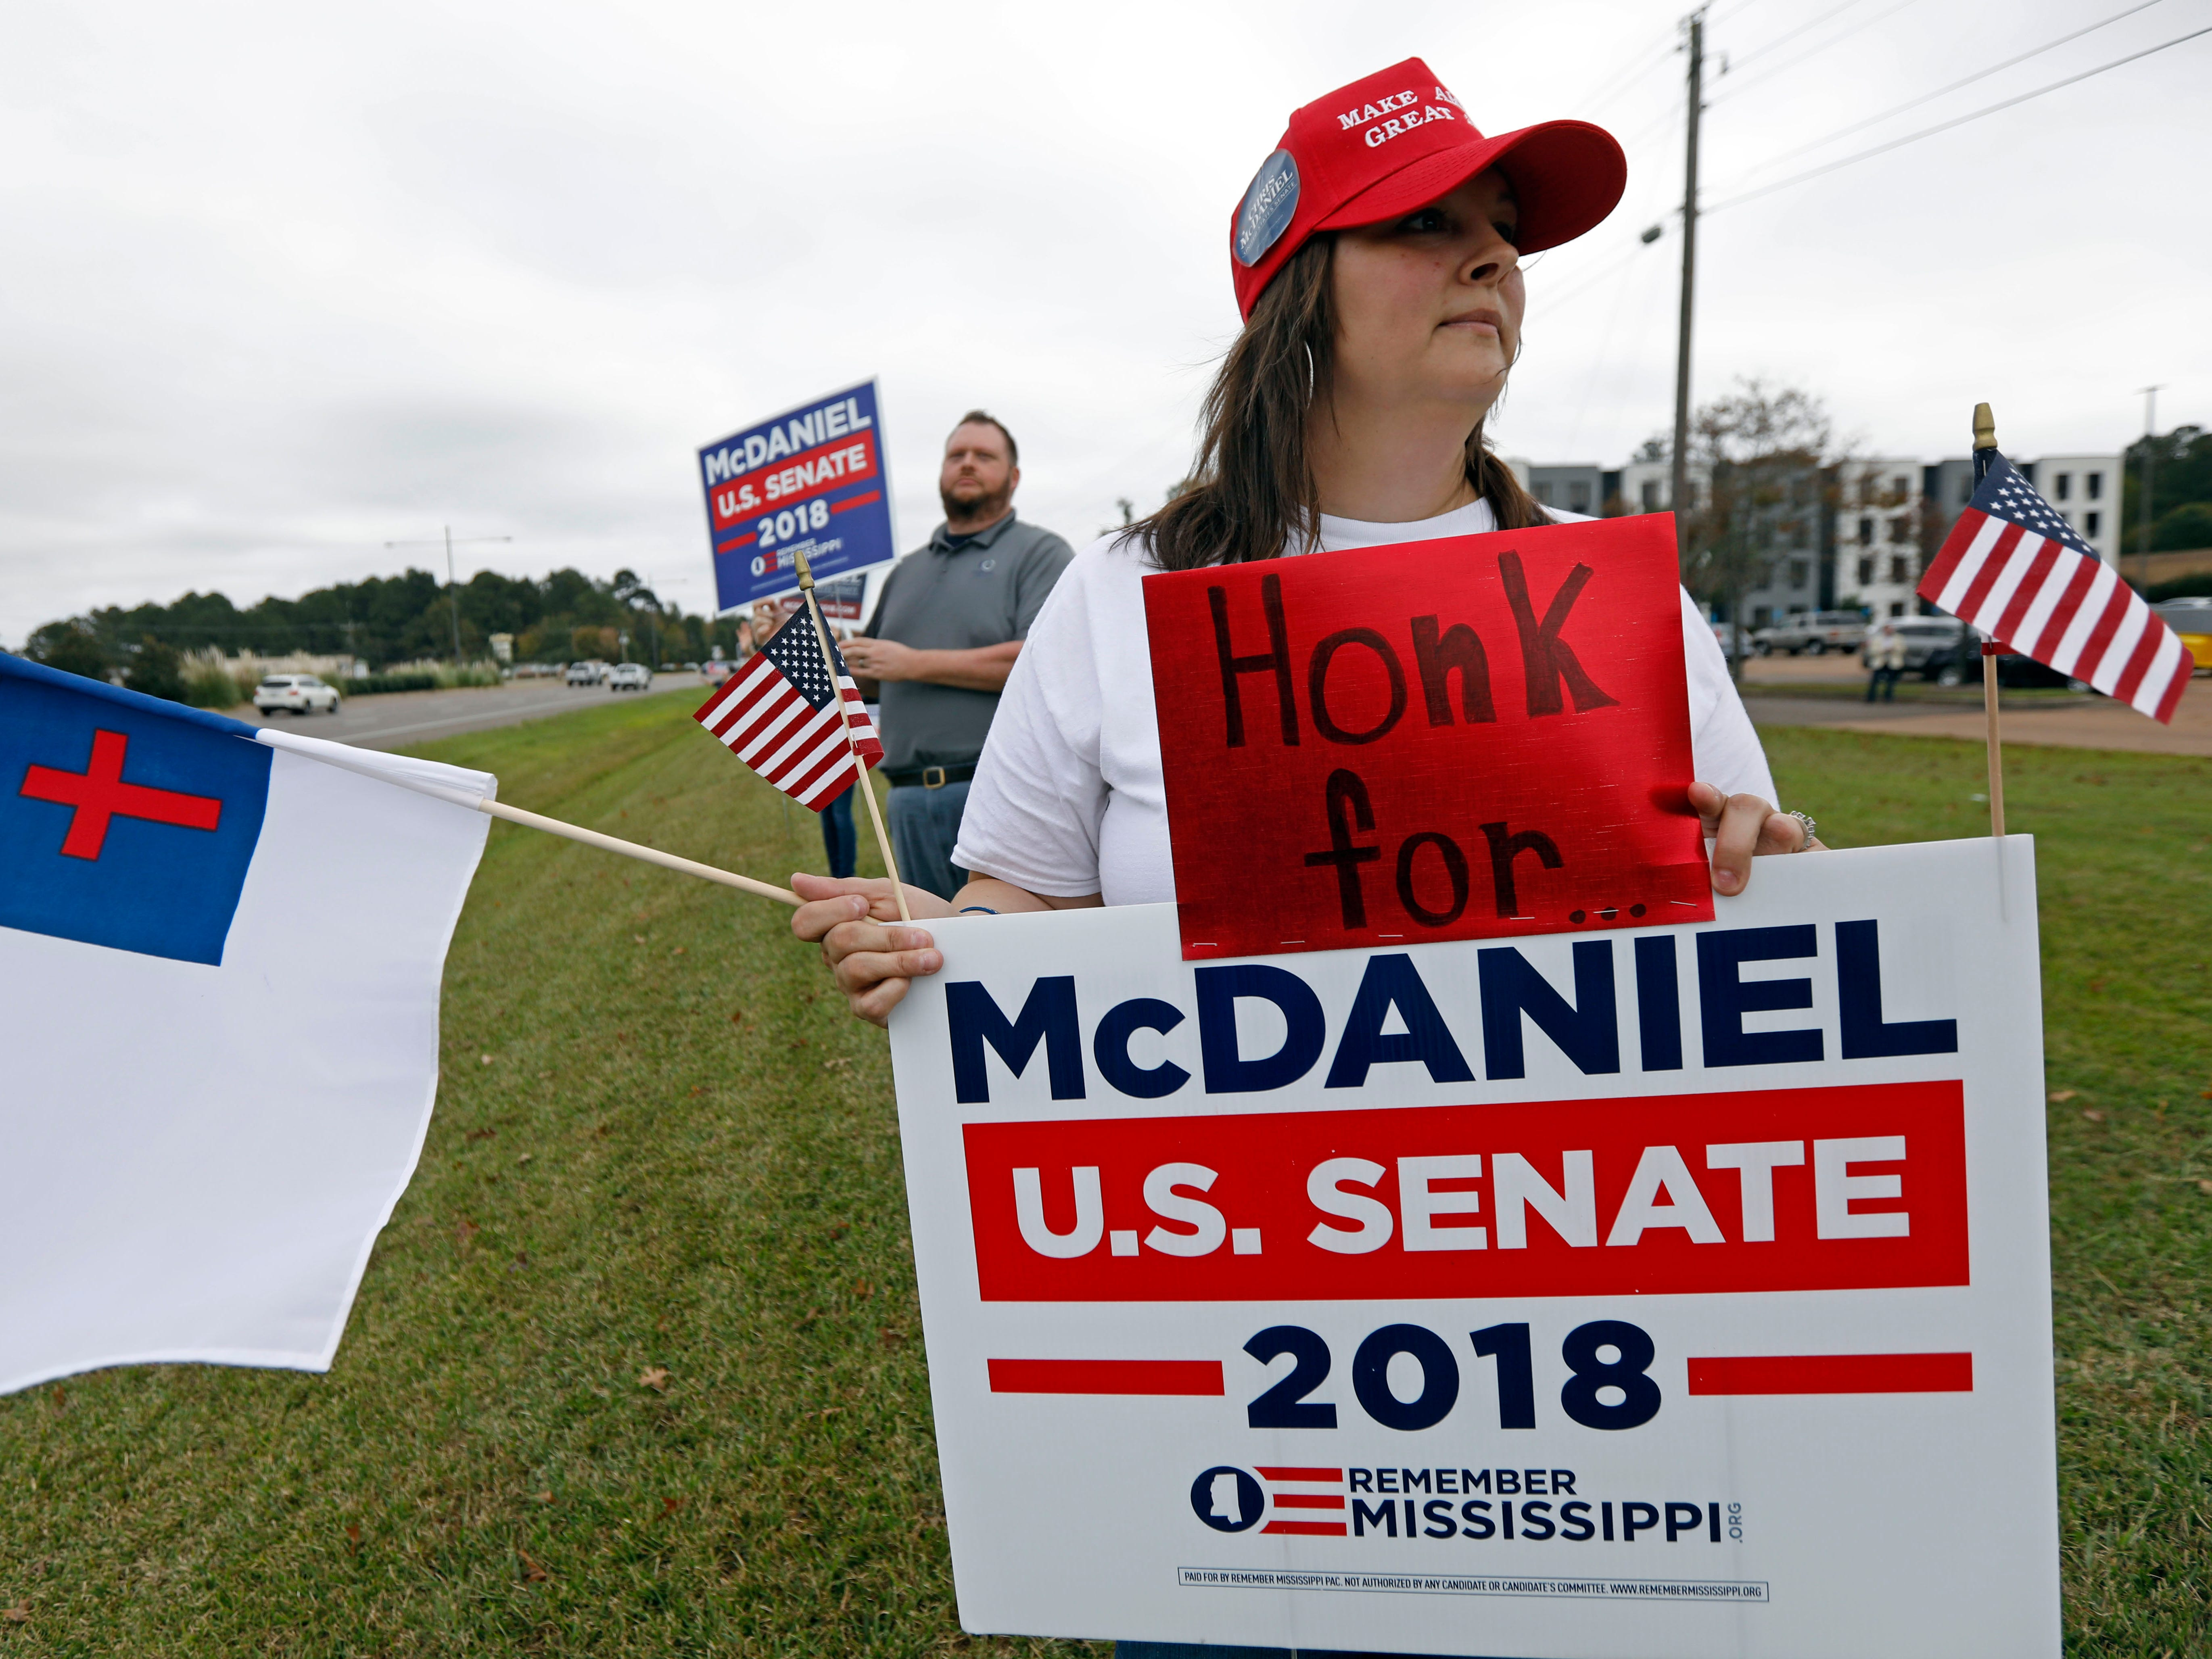 Jennifer Ables of Rankin County, Miss., joins other supporters of State Sen. Chris McDaniel, R-Ellisville, in waving signs and calling out for support along a main thoroughfare in Flowood, Miss., Monday, Nov. 5, 2018.